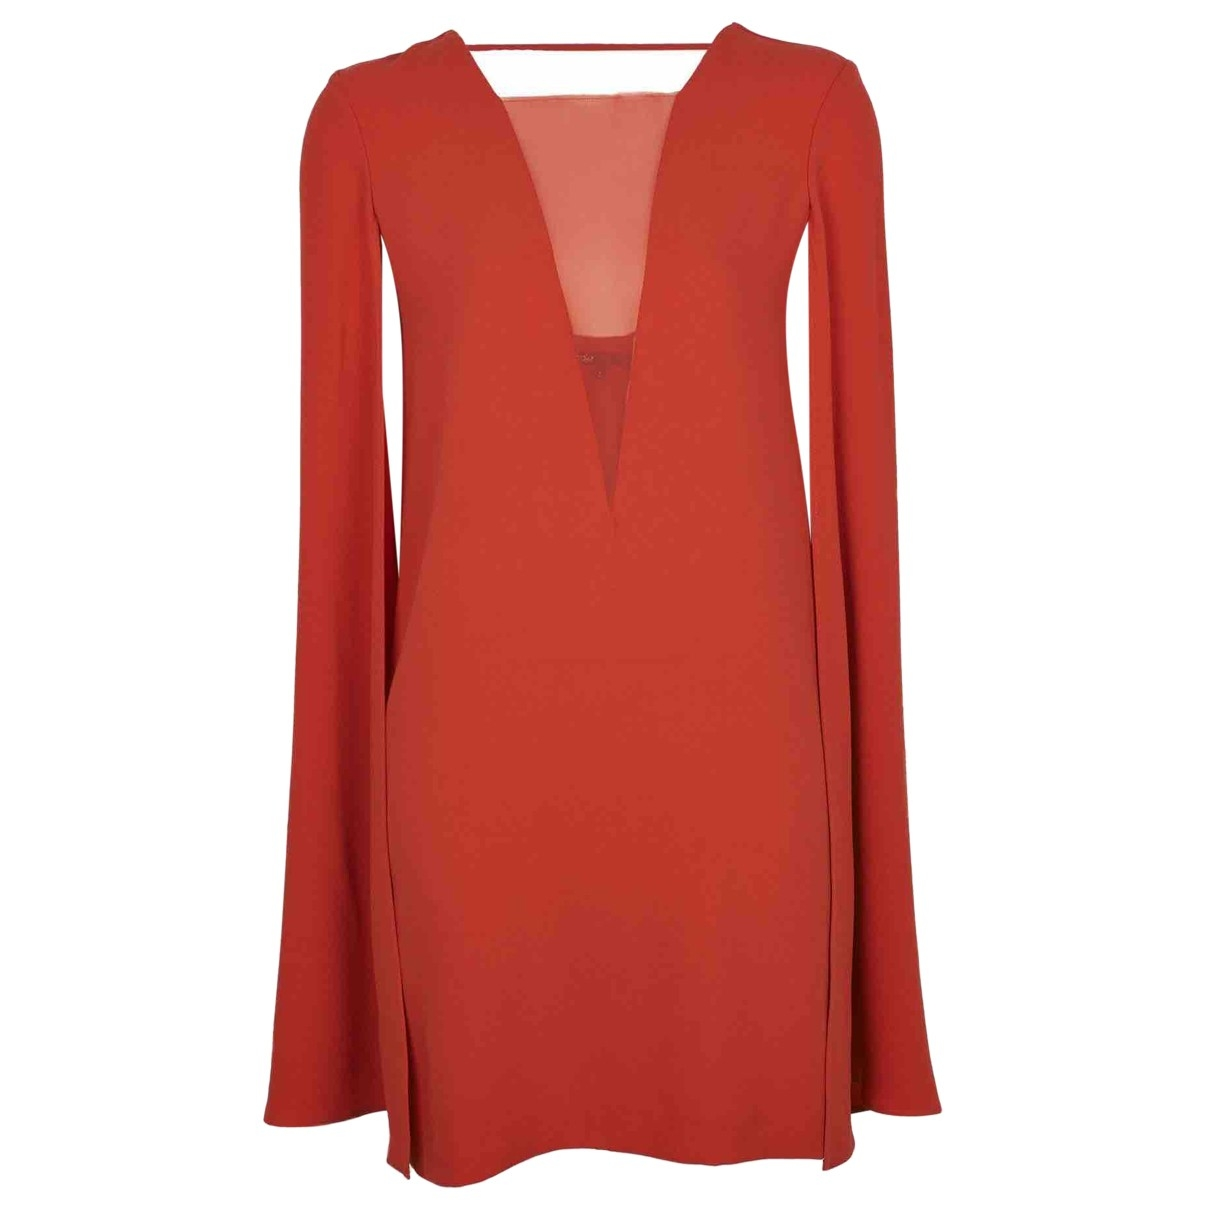 Maje \N Kleid in  Rot Polyester